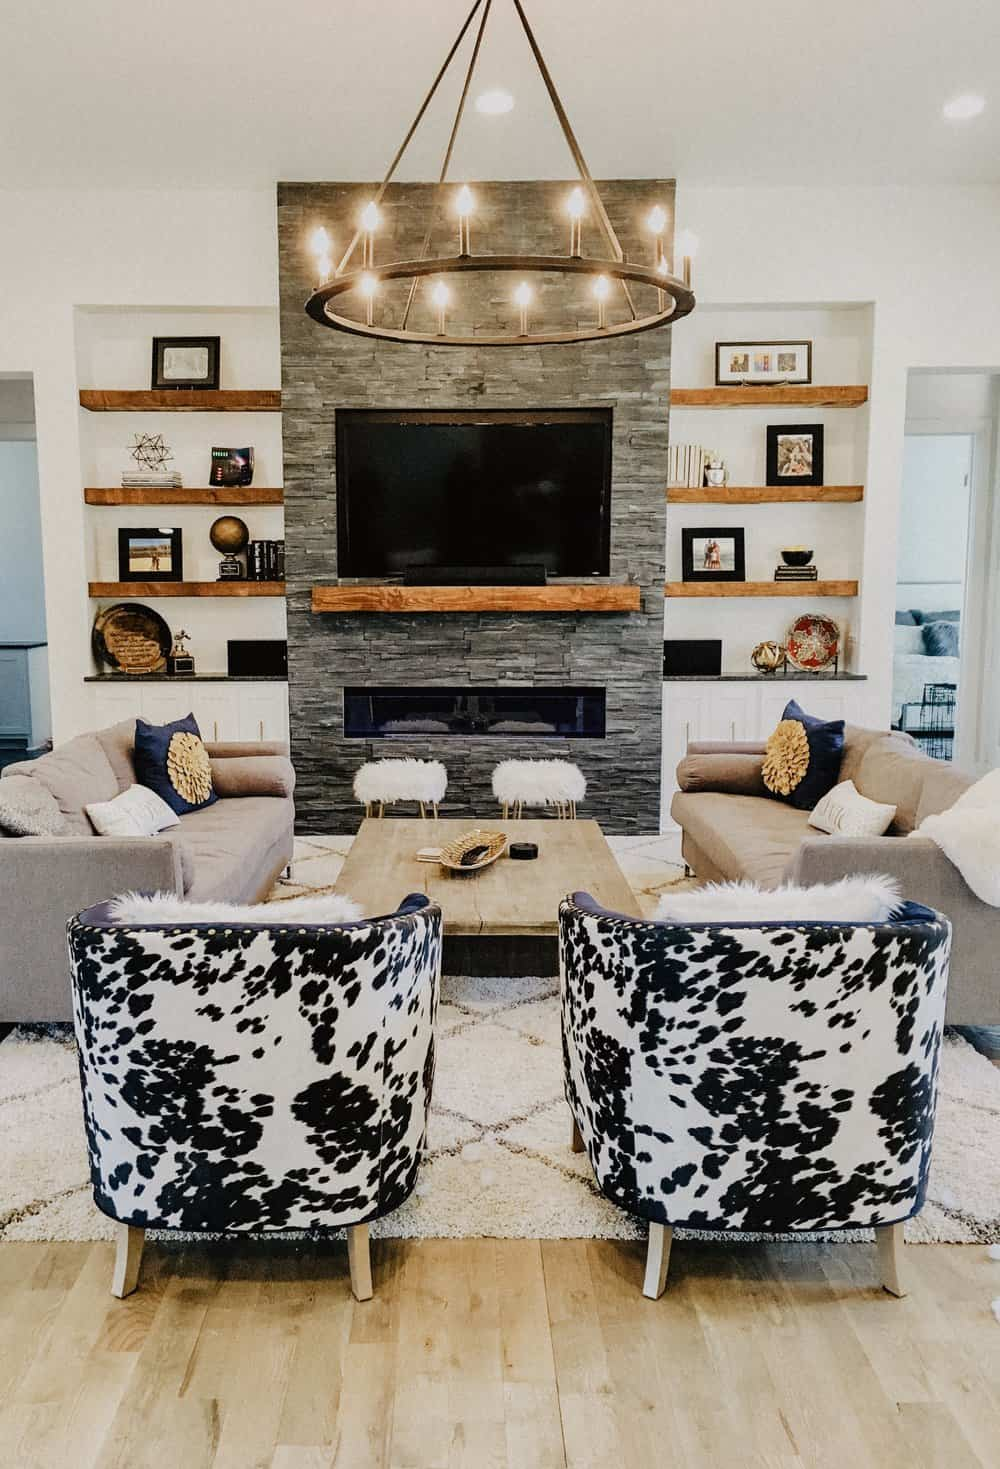 Accent chair Stylish Ways To Decorate Your Home With Understated Animal Print